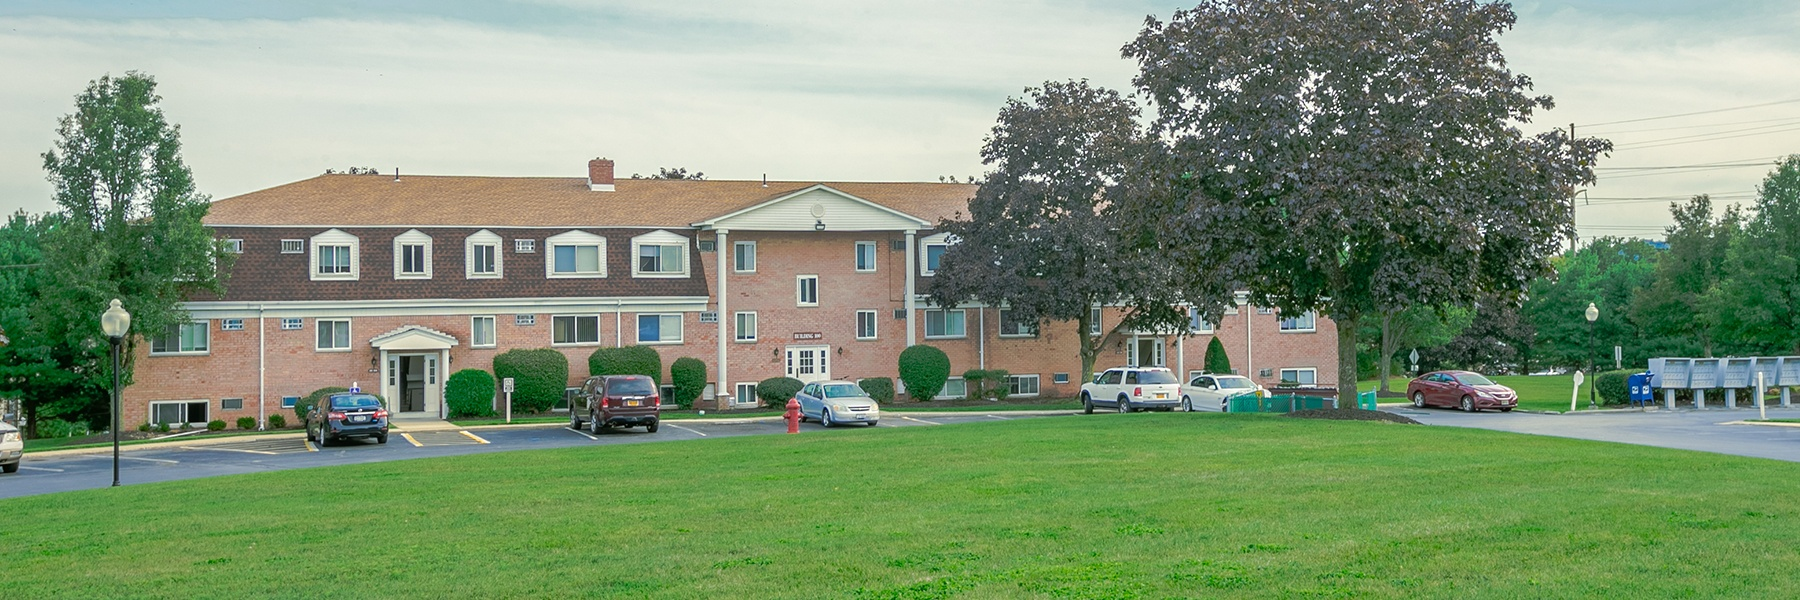 Knollcrest Village Apartments For Rent in Chester, NY Courtyard